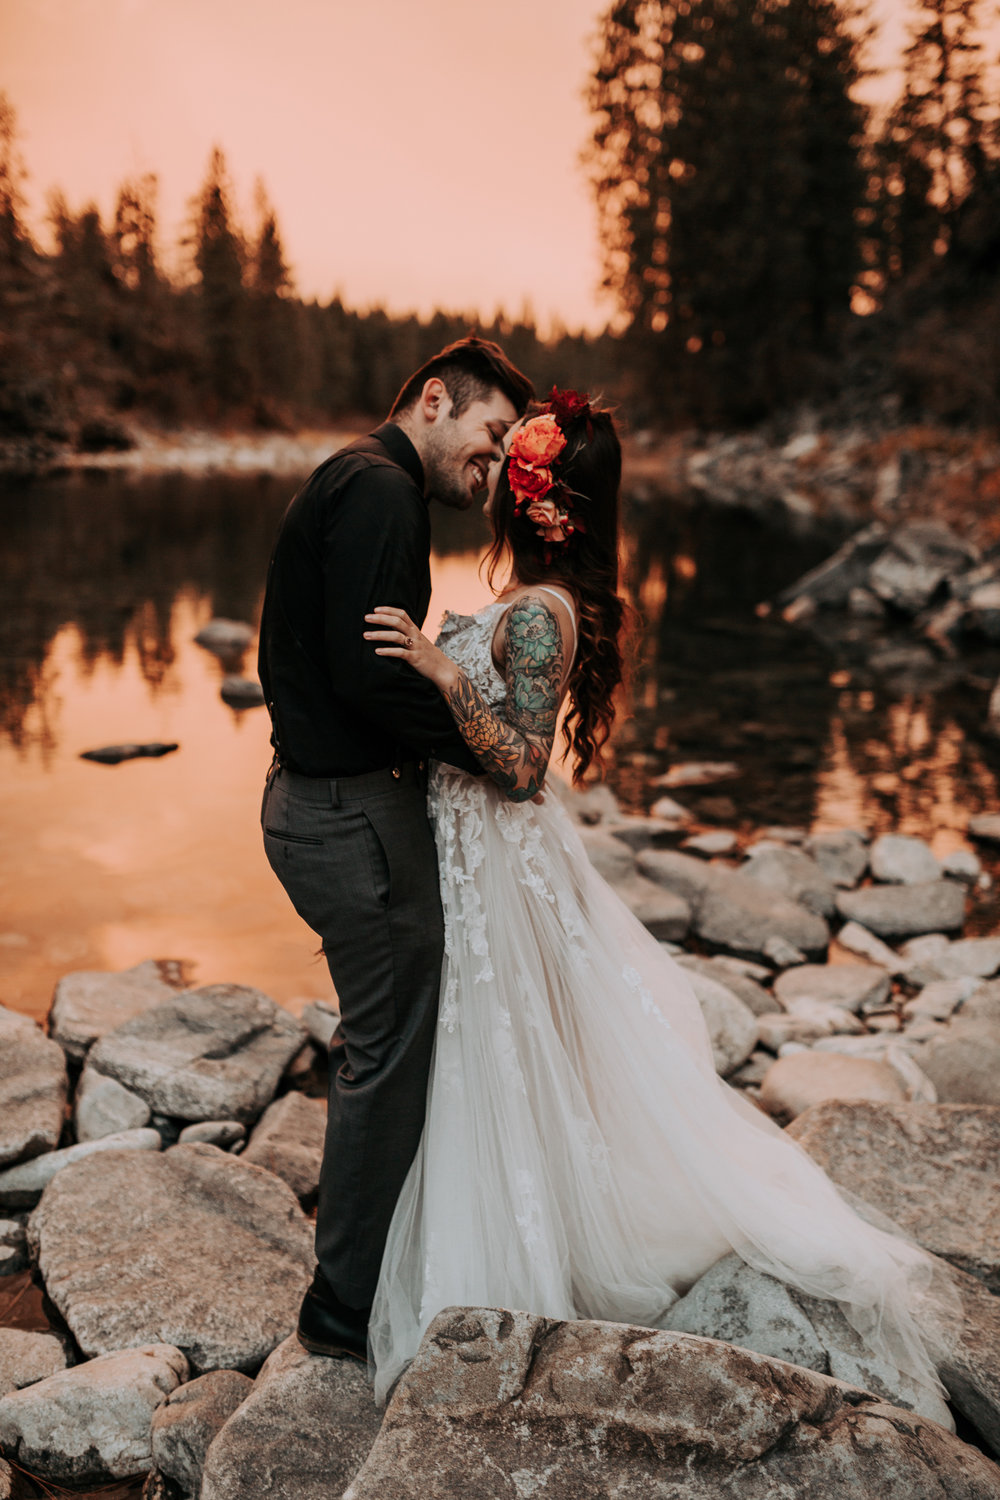 Smile kiss sunset bridal wedding photo shoot spokane